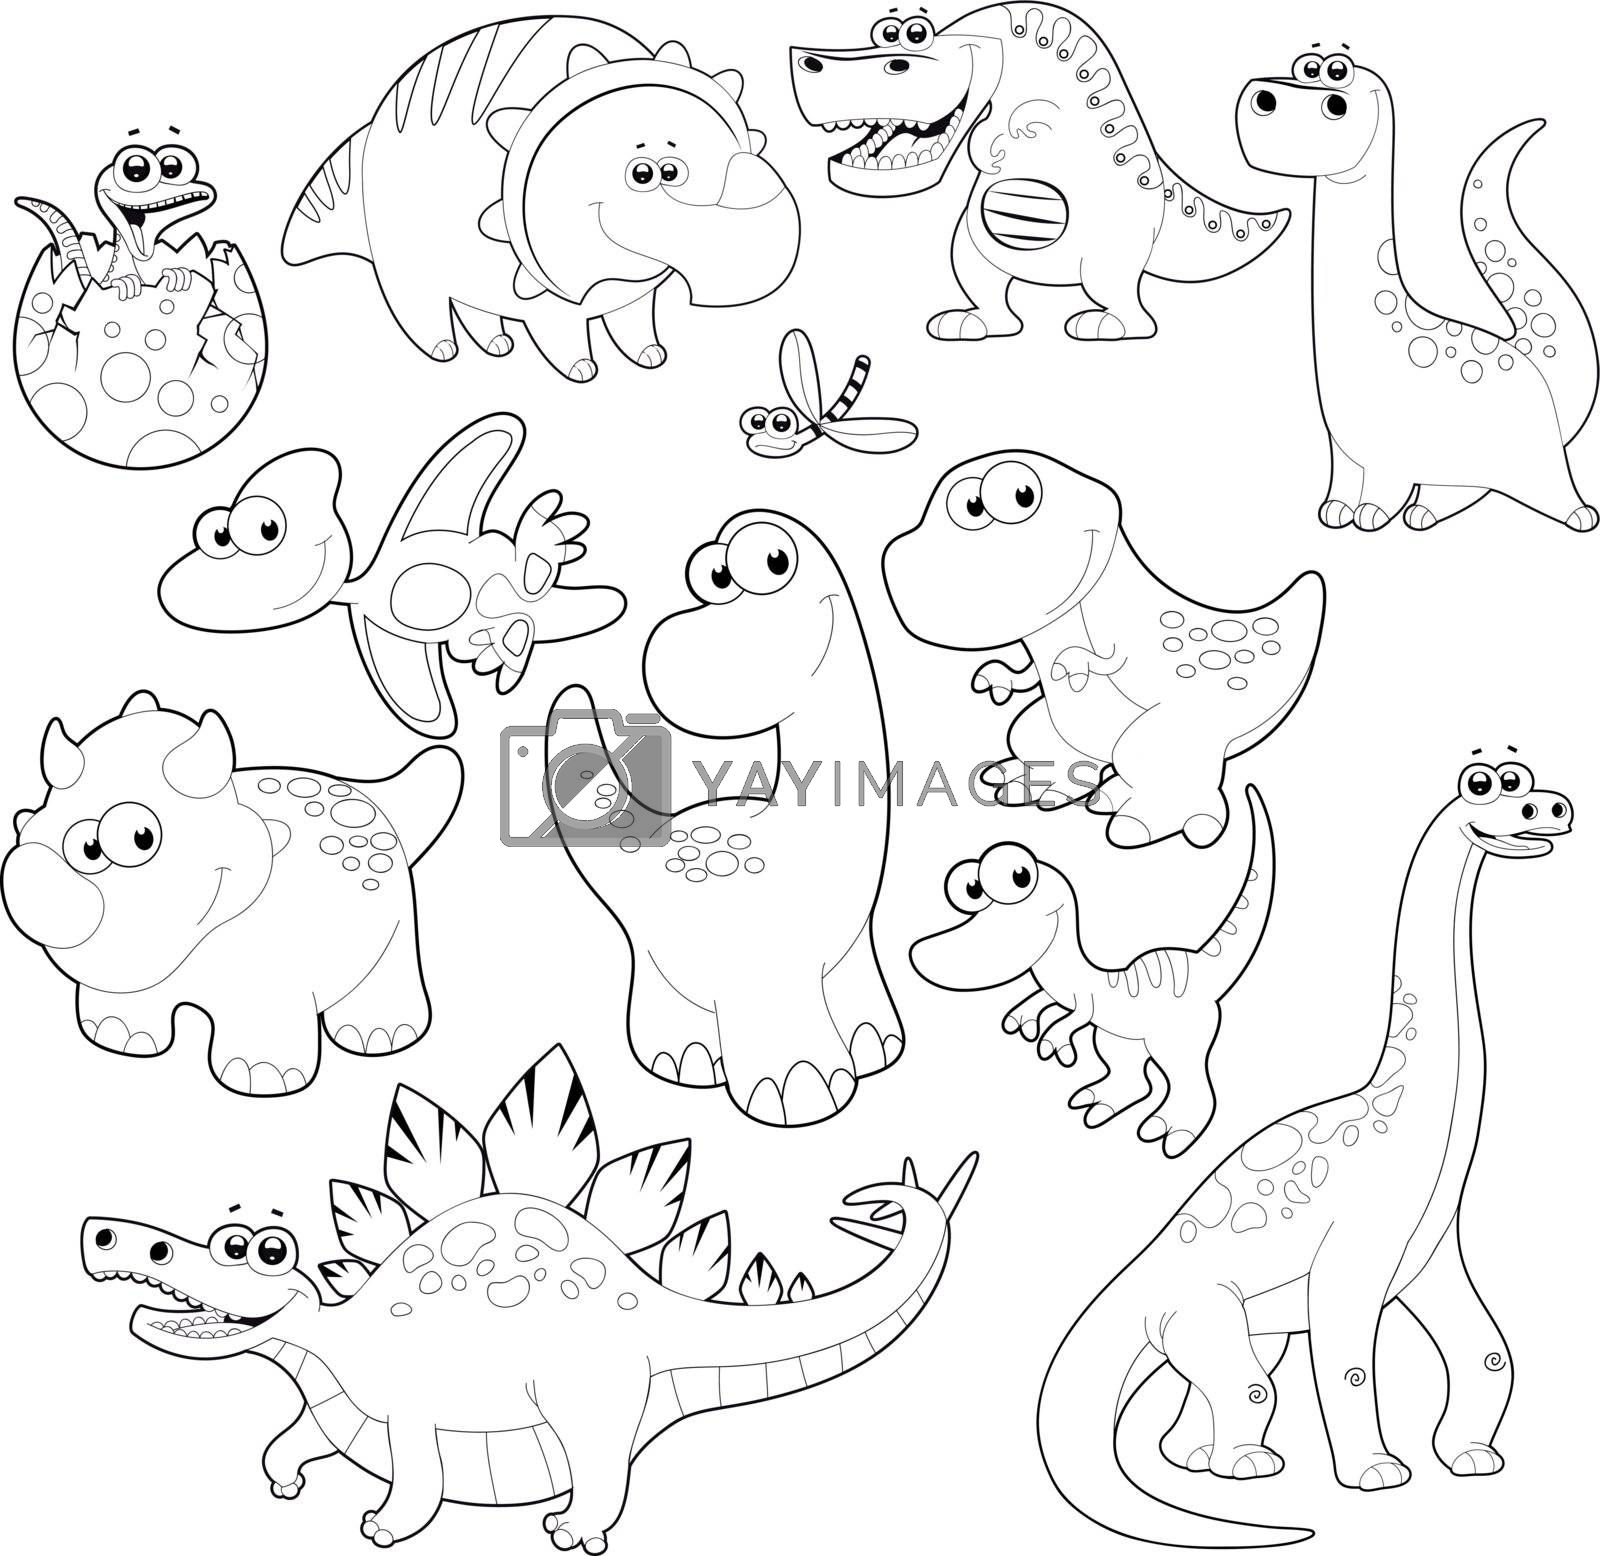 Dinosaurs Family. by ddraw